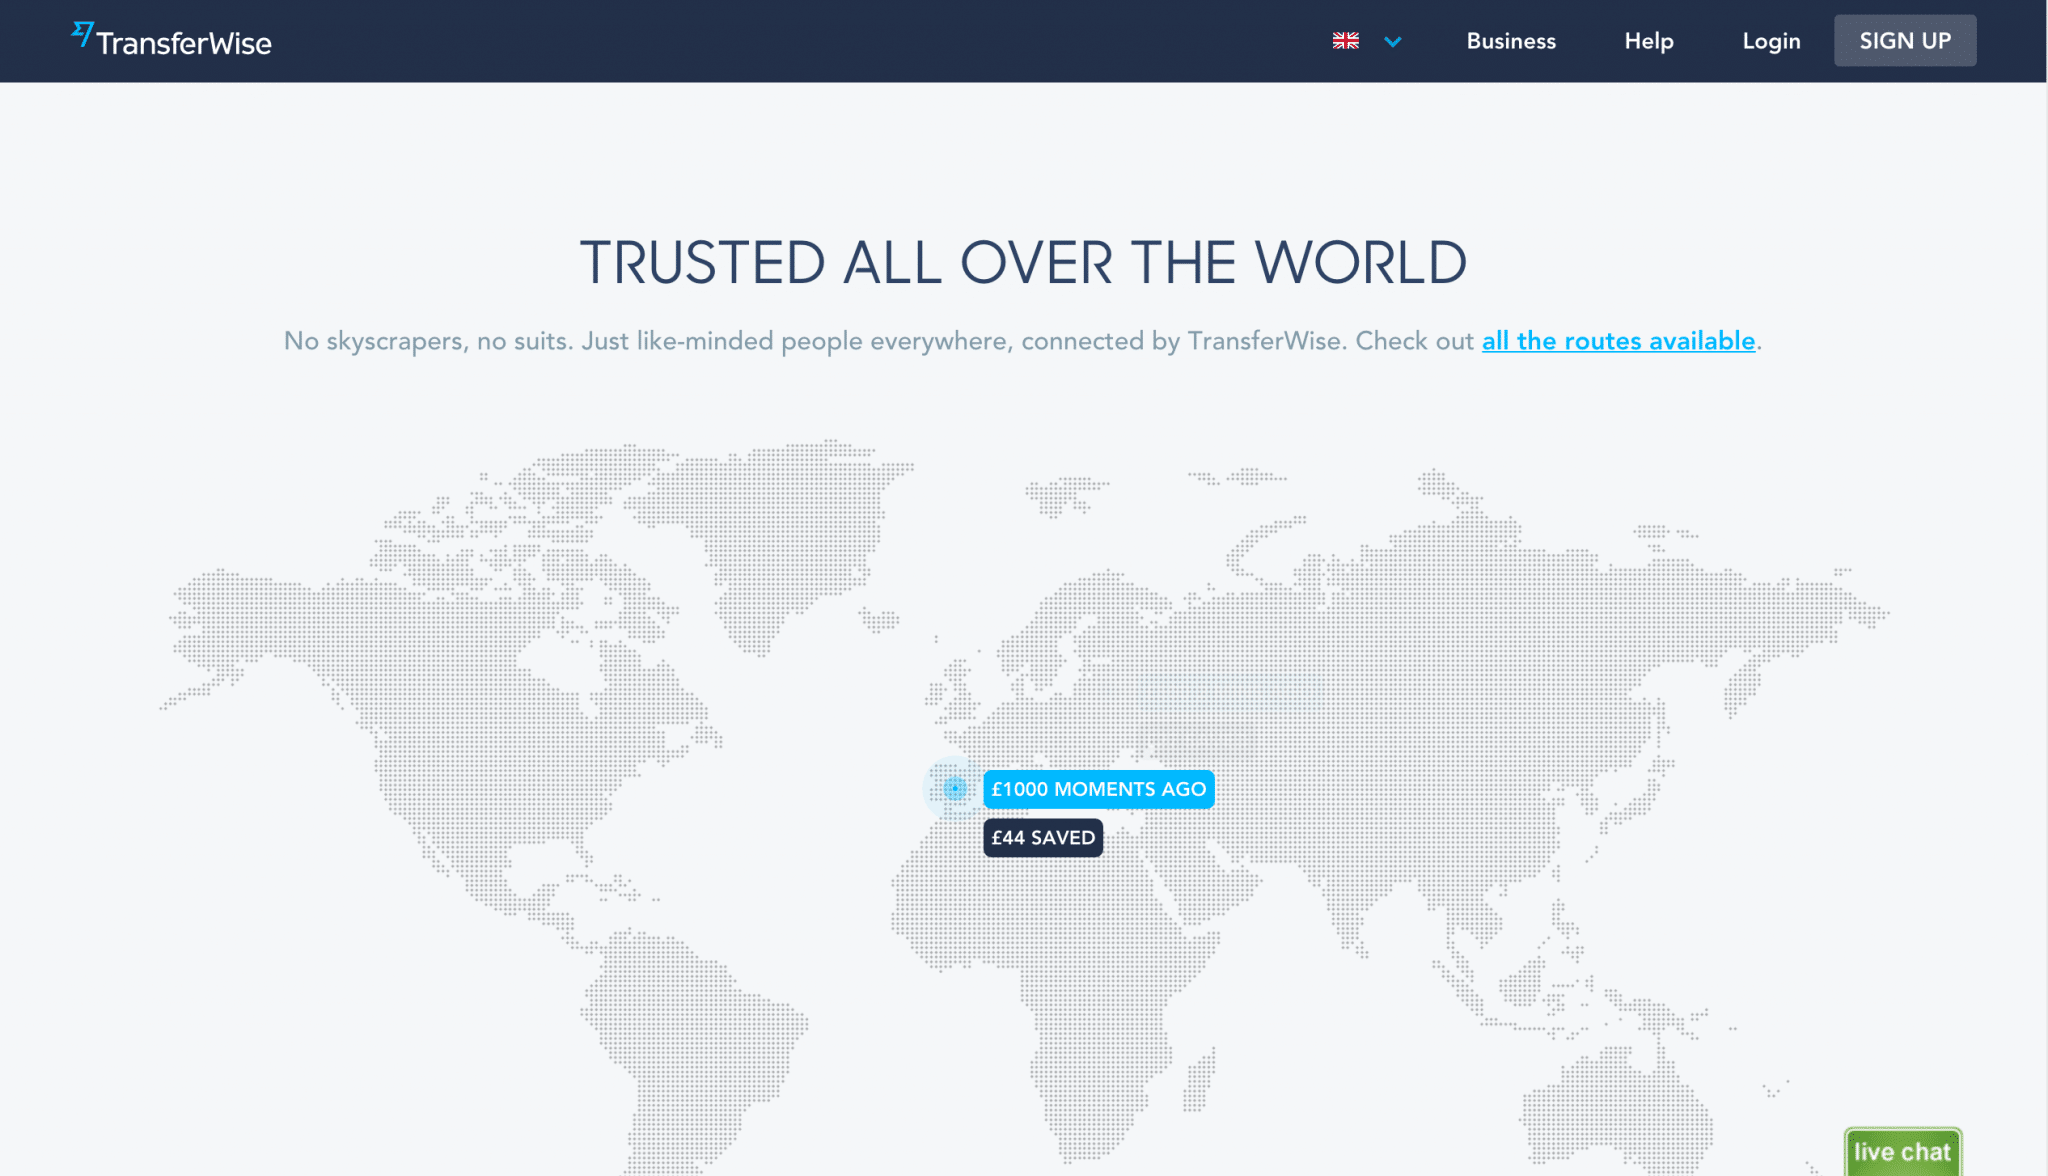 TransferWise homepage